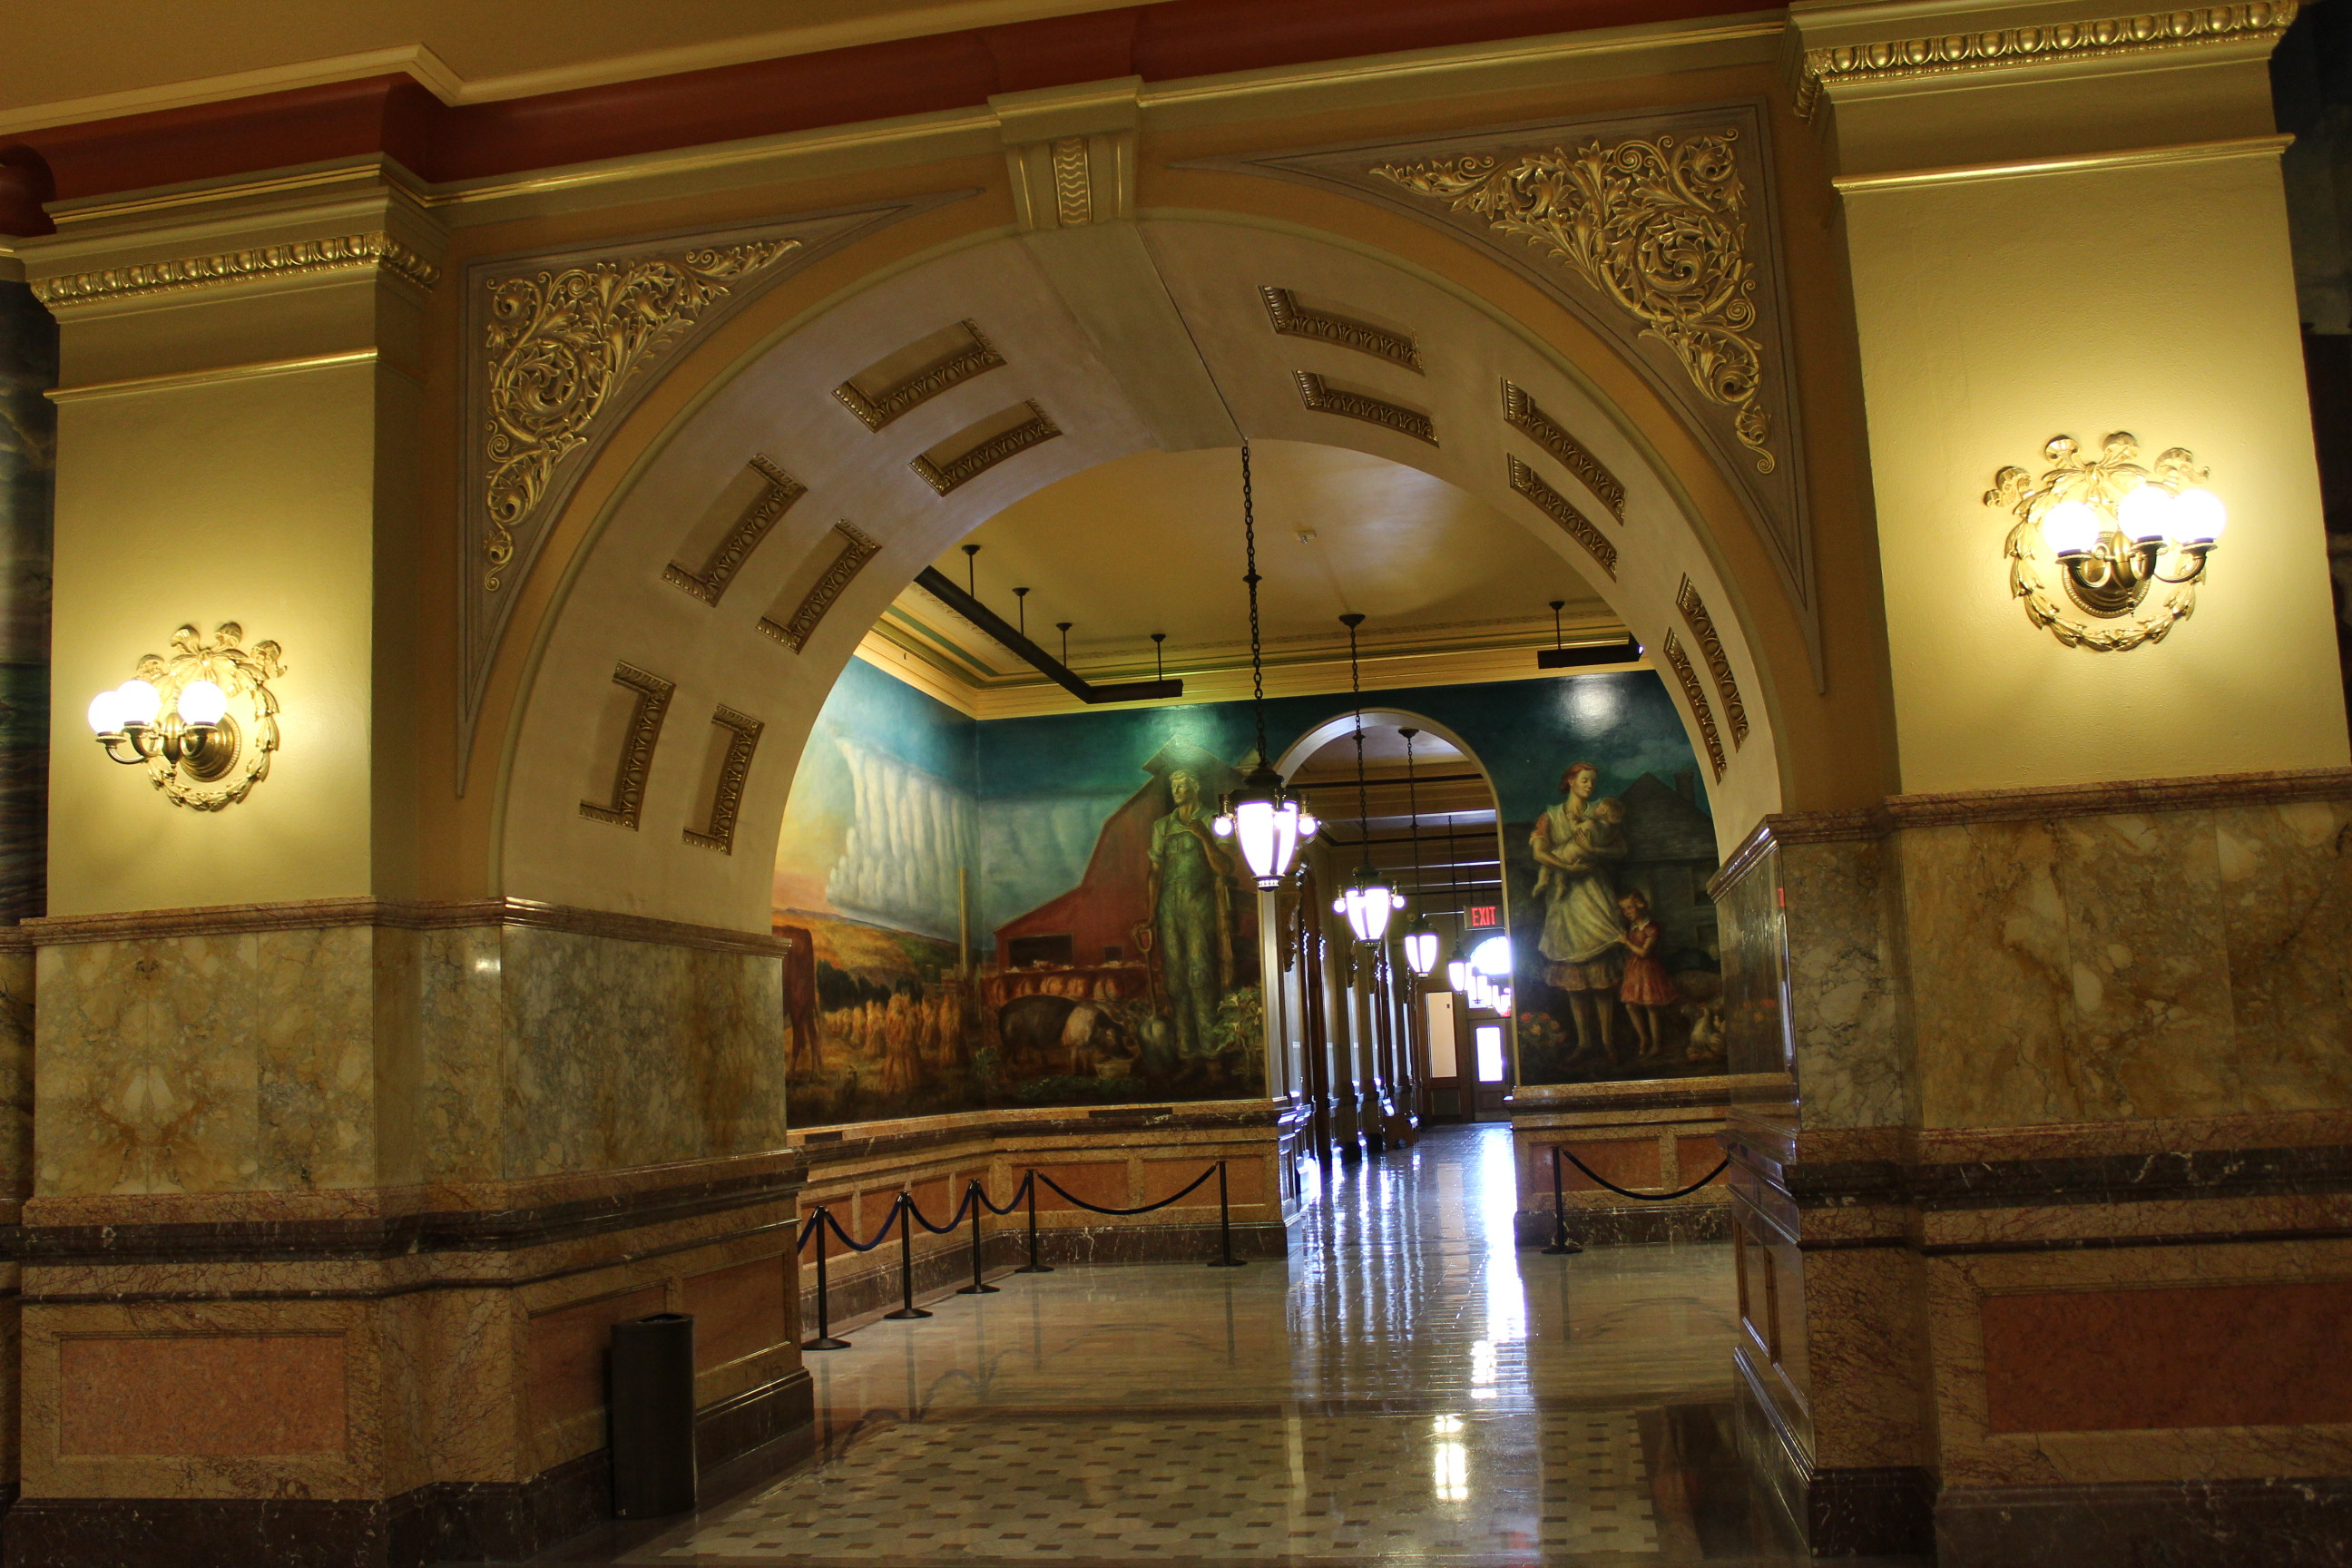 The corridors of the Kansas Statehouse are filled with beautiful murals and statues. (Photo by J. Schafer)